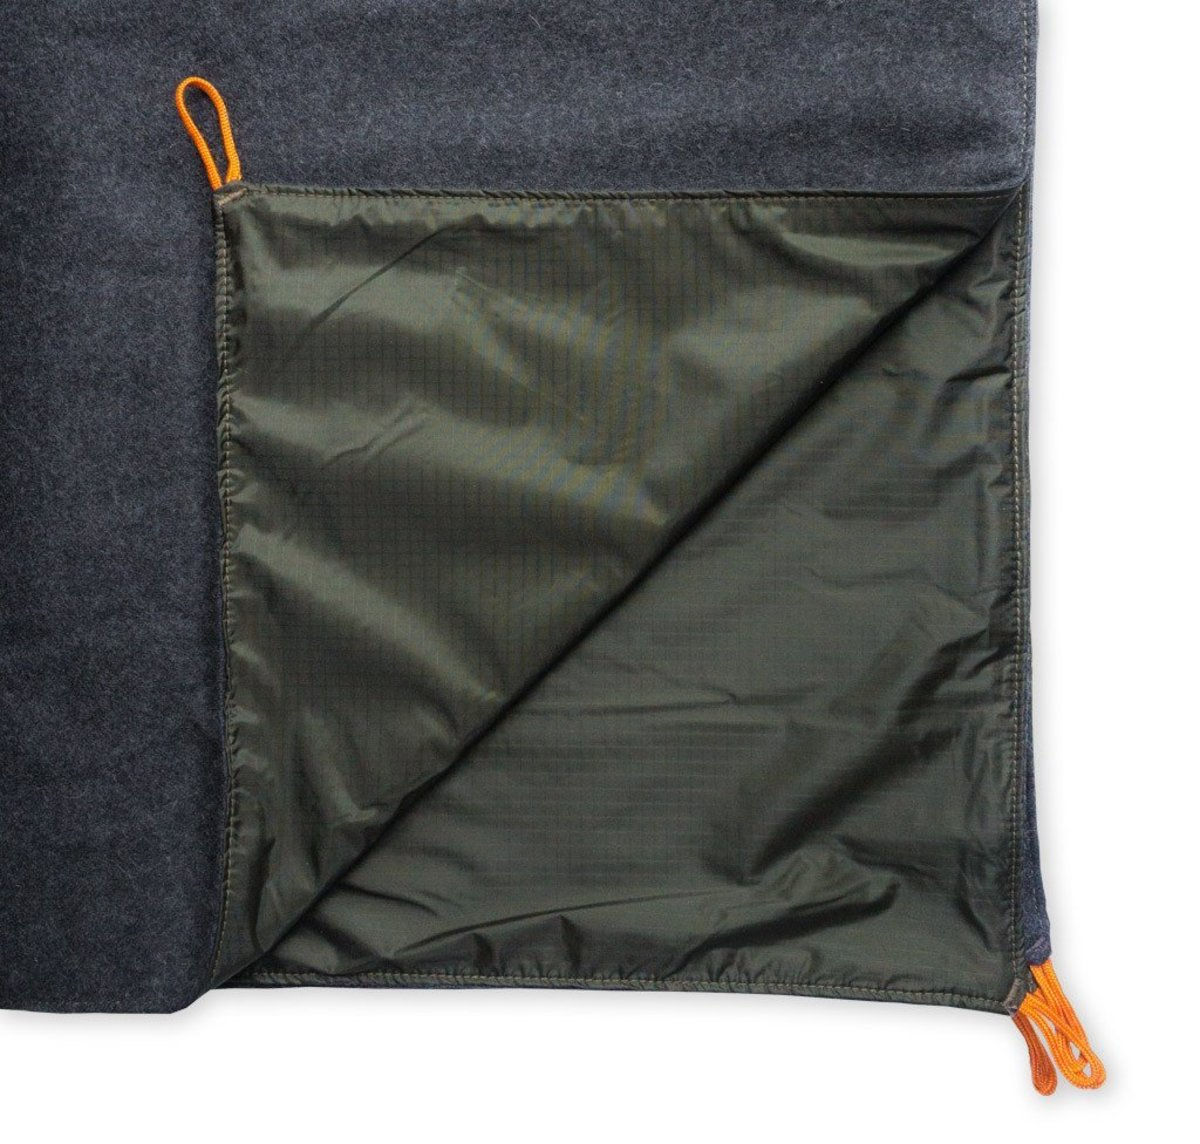 Prometheus Design Werx Technical Picnic Blanket